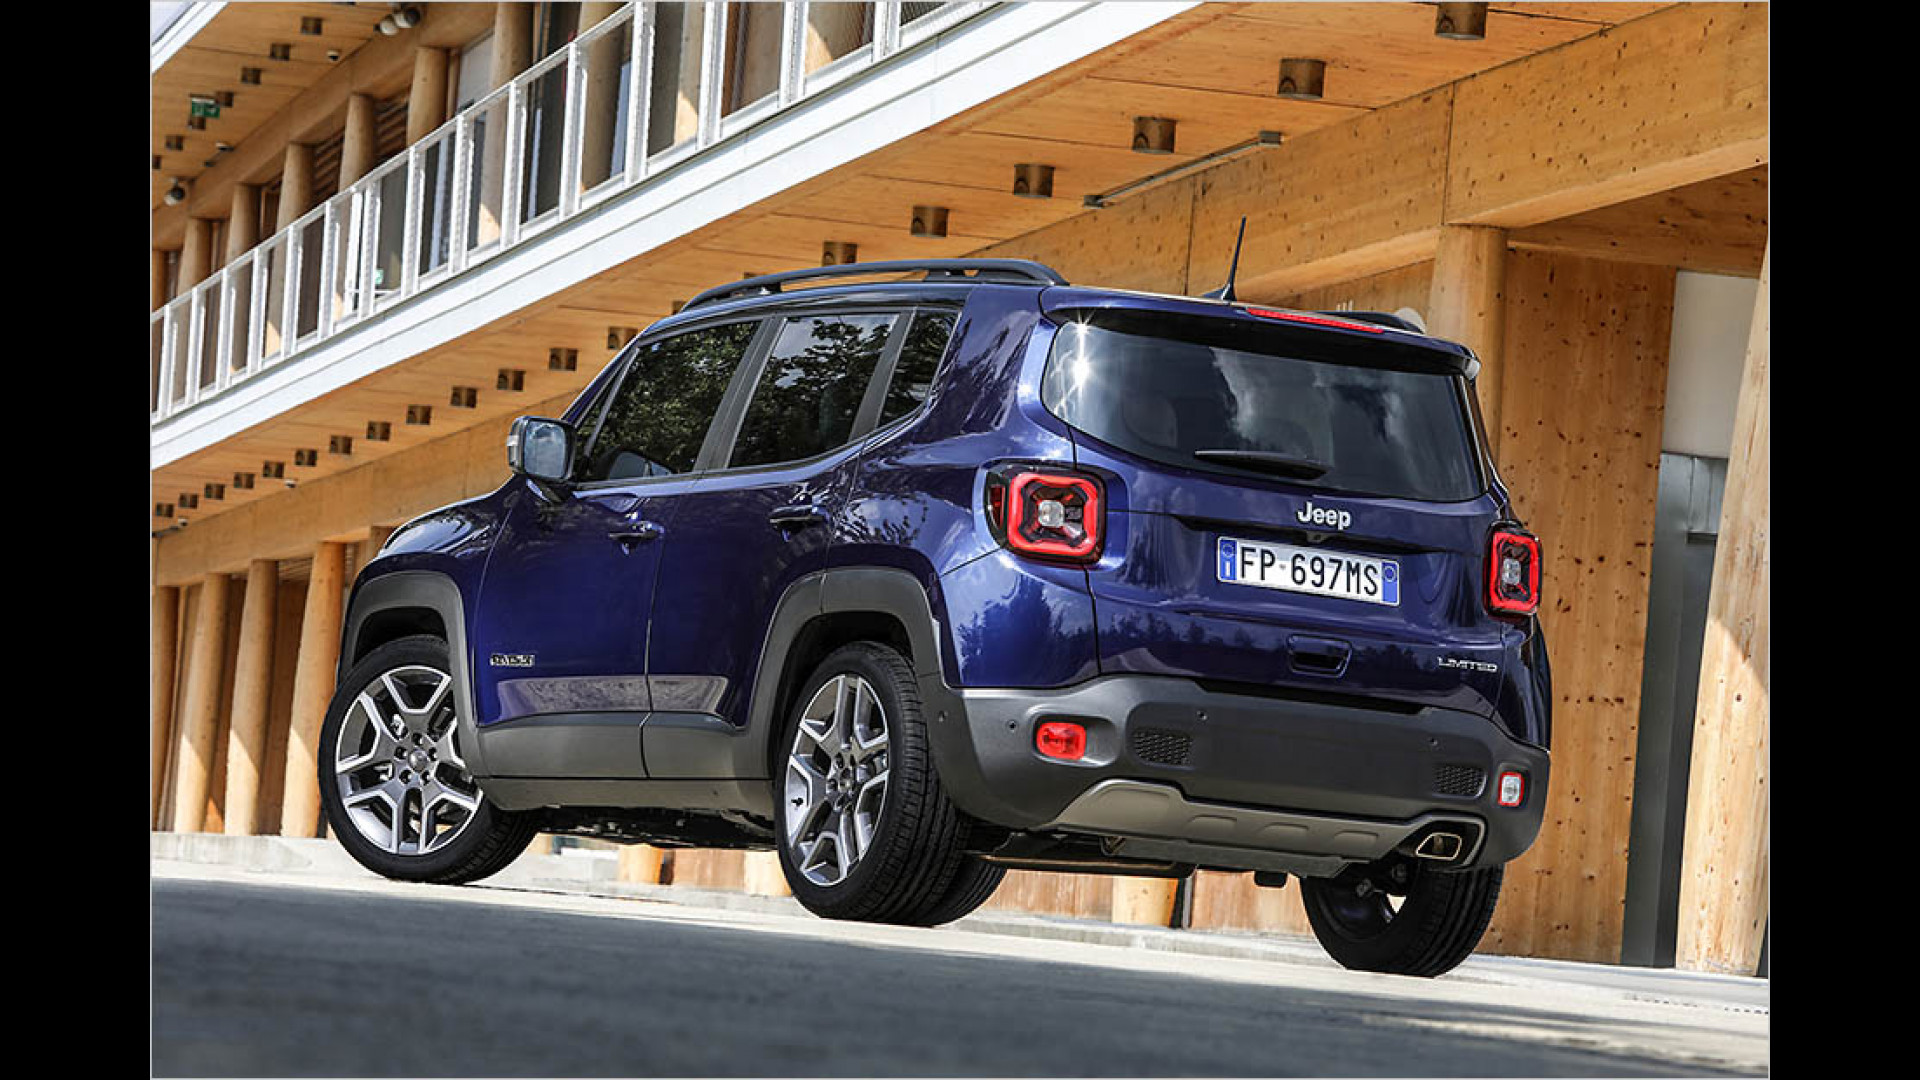 Gelifteter Jeep Renegade Im Test